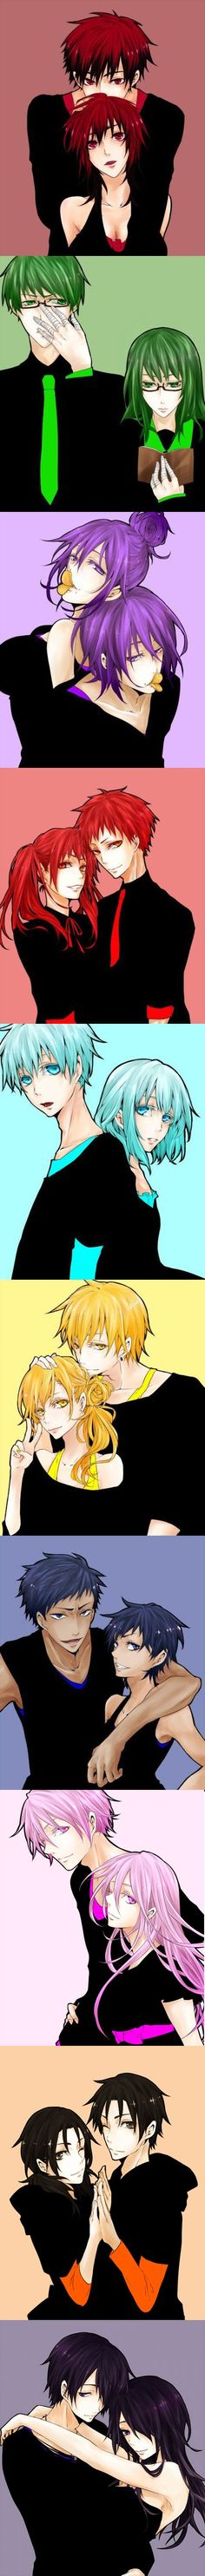 Read More About Kuroko no Basket genderbender. This artist is surprisingly…